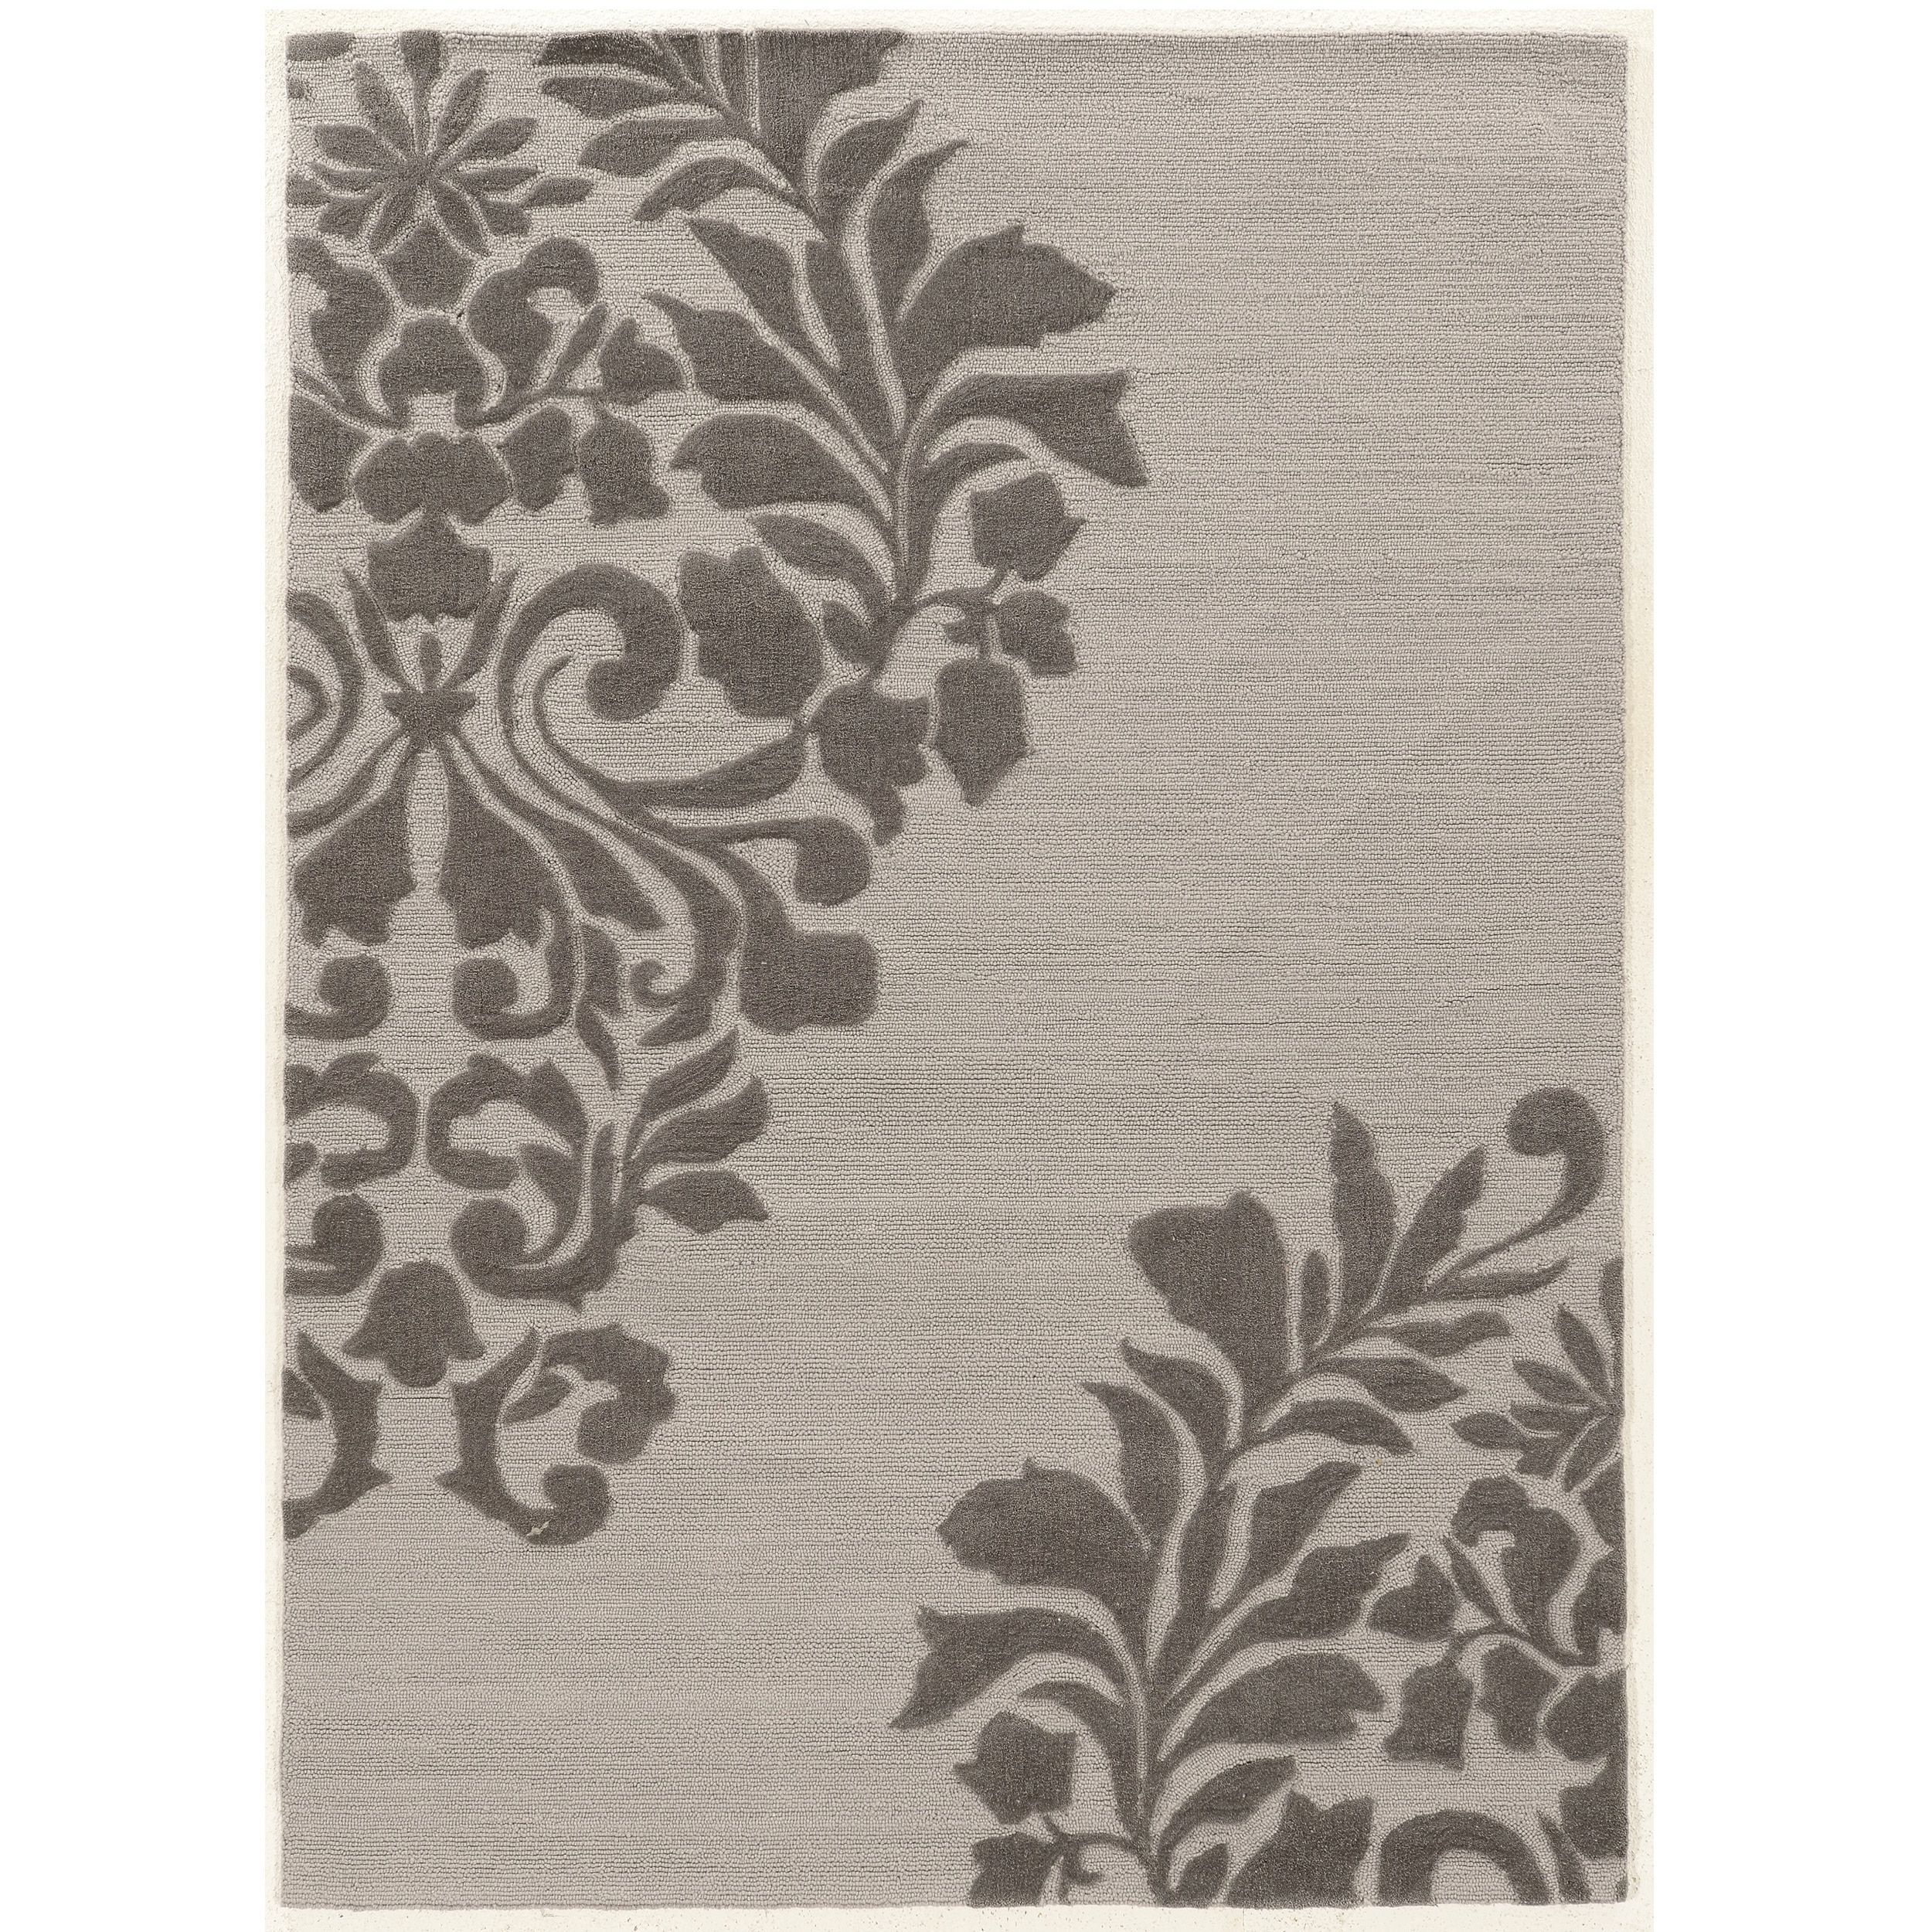 "Linon Hand Tufted Trio Medallion Grey Polyester Rug (1'10"" X 2'10"") (Size), Size 2' x 3'"